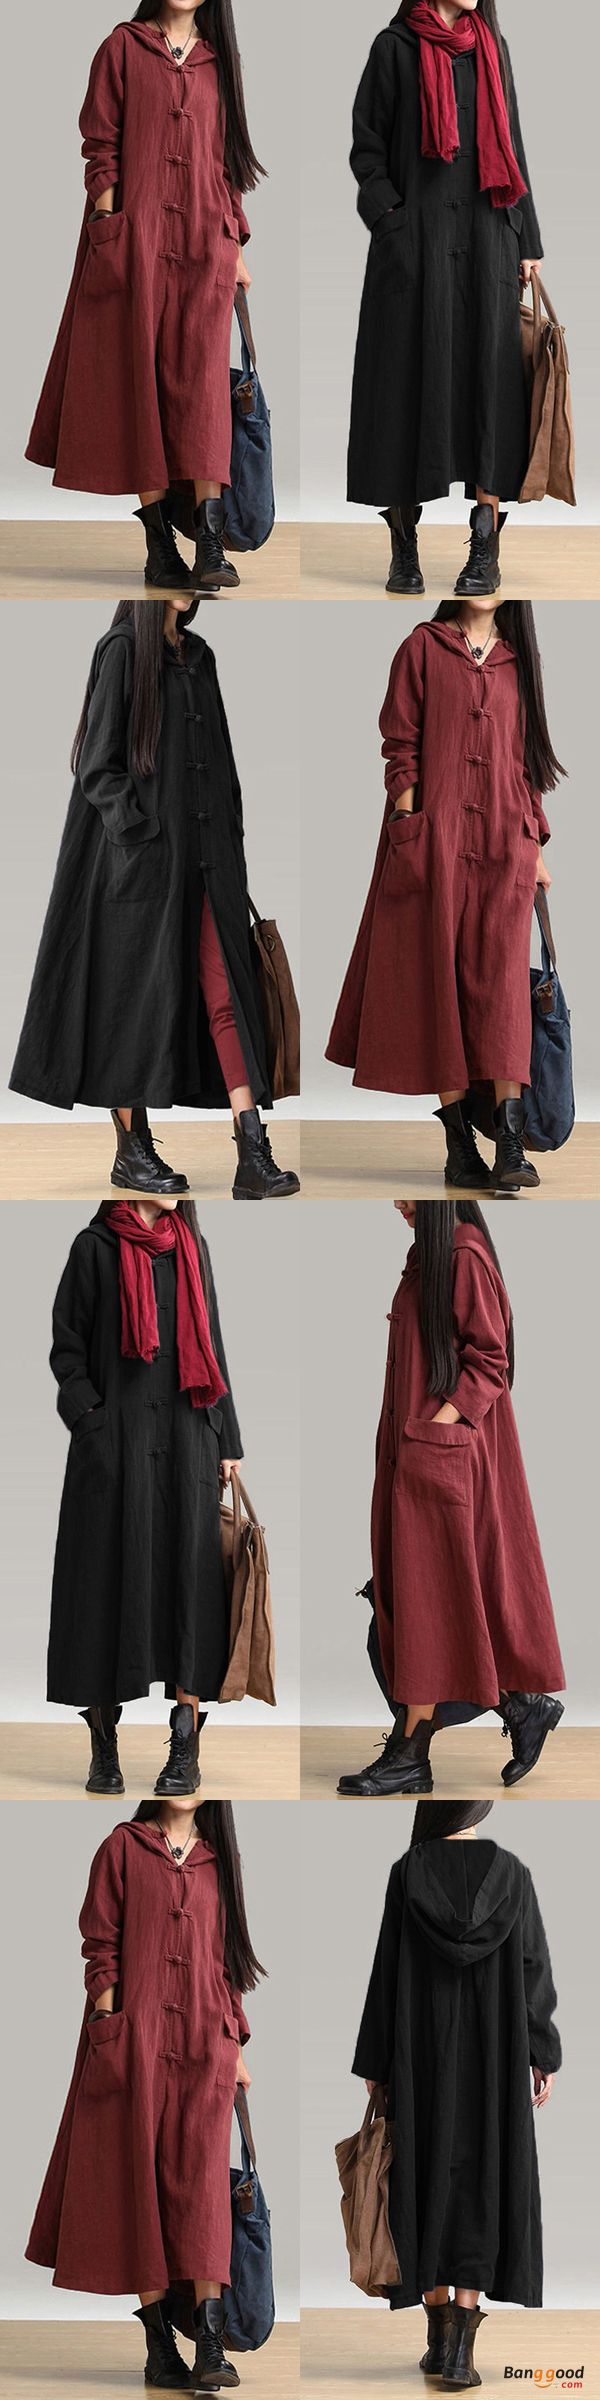 US$26.99+Free shipping. Women Dresses, Long Dresses, Dresses Casual, Dresses for Teens, Summer Dresses, Summer Outfits, Retro Fashion. Home or out, love this retro summer dress. Style: Fashion, Vintage. Color: Black, Wine Red.